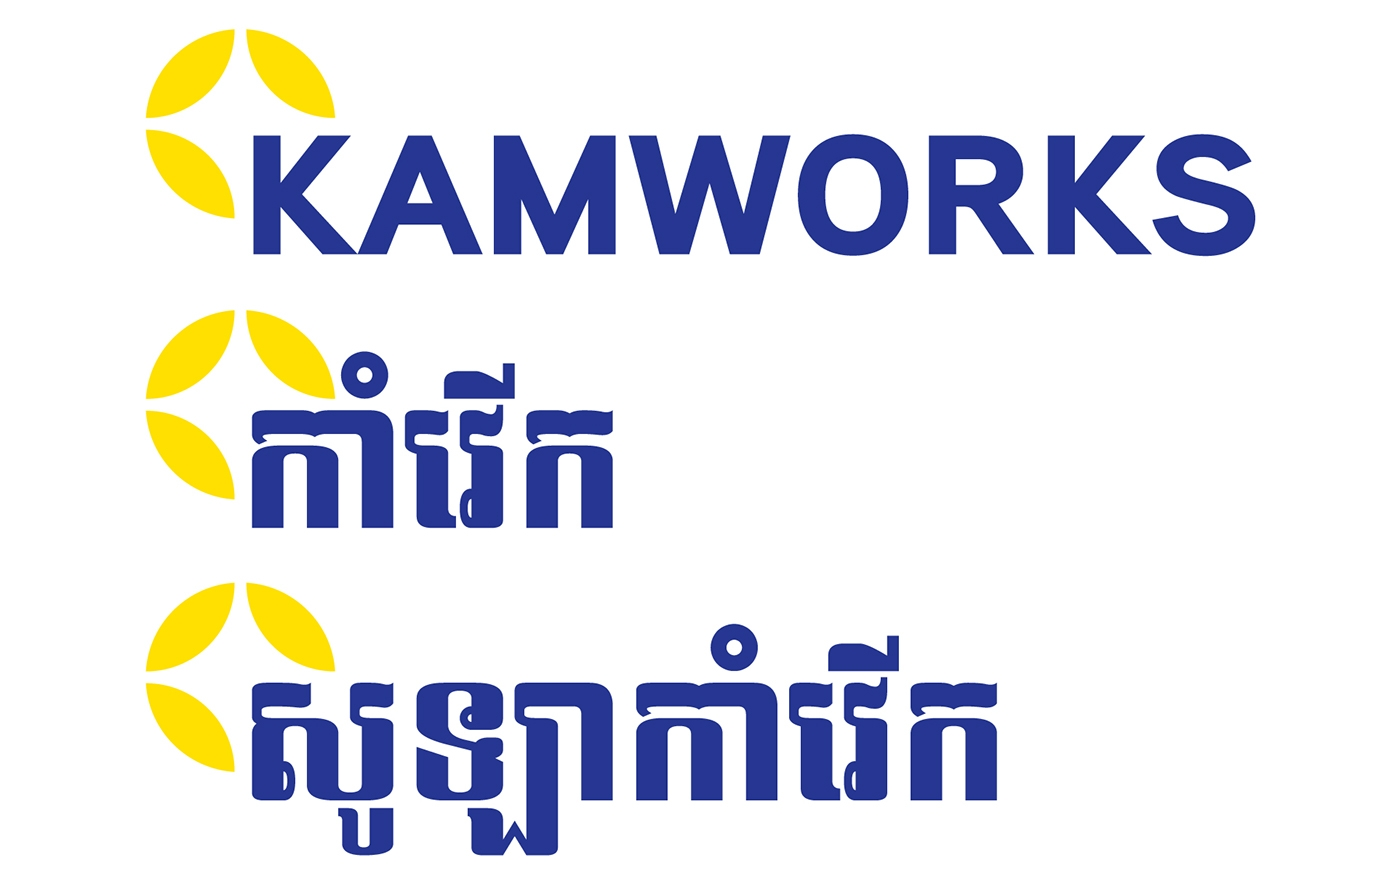 Kamworks final logo redesign